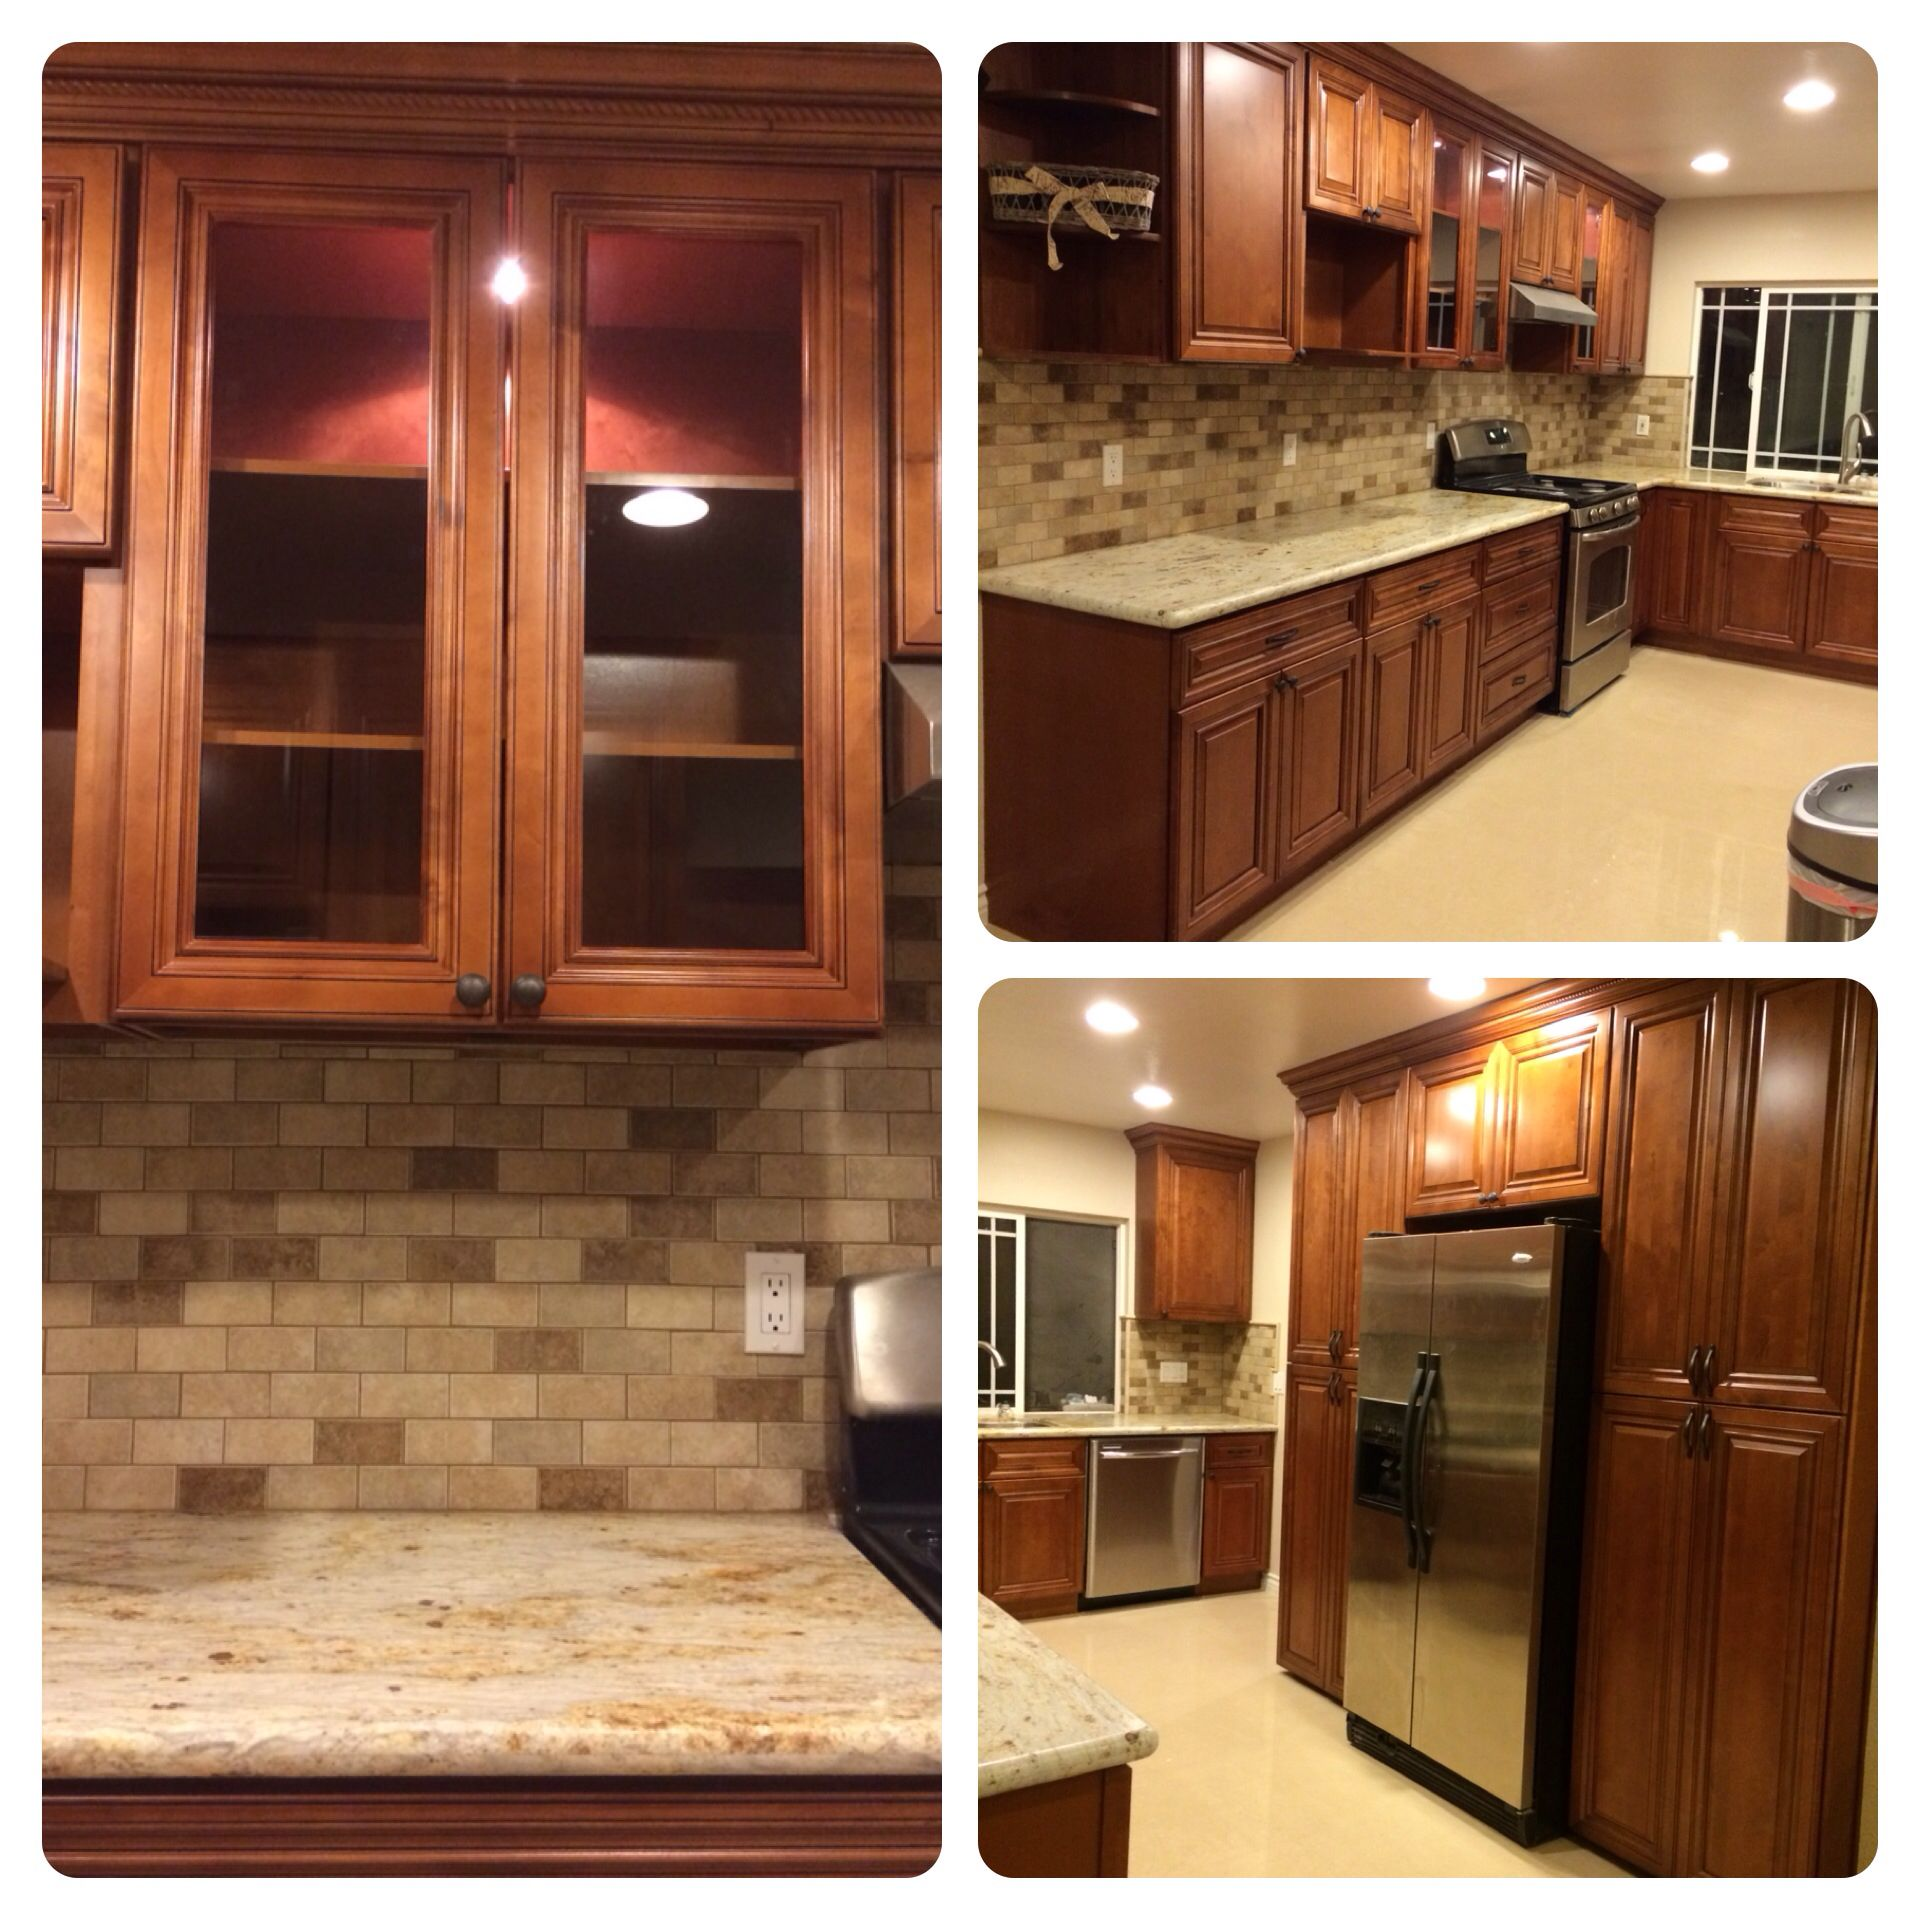 Coffee Glazed Cabinets W Yellow River Granite Tri Color Subway Back Splash Tiles New Homes Kitchen Upgrades Kitchen Cabinets